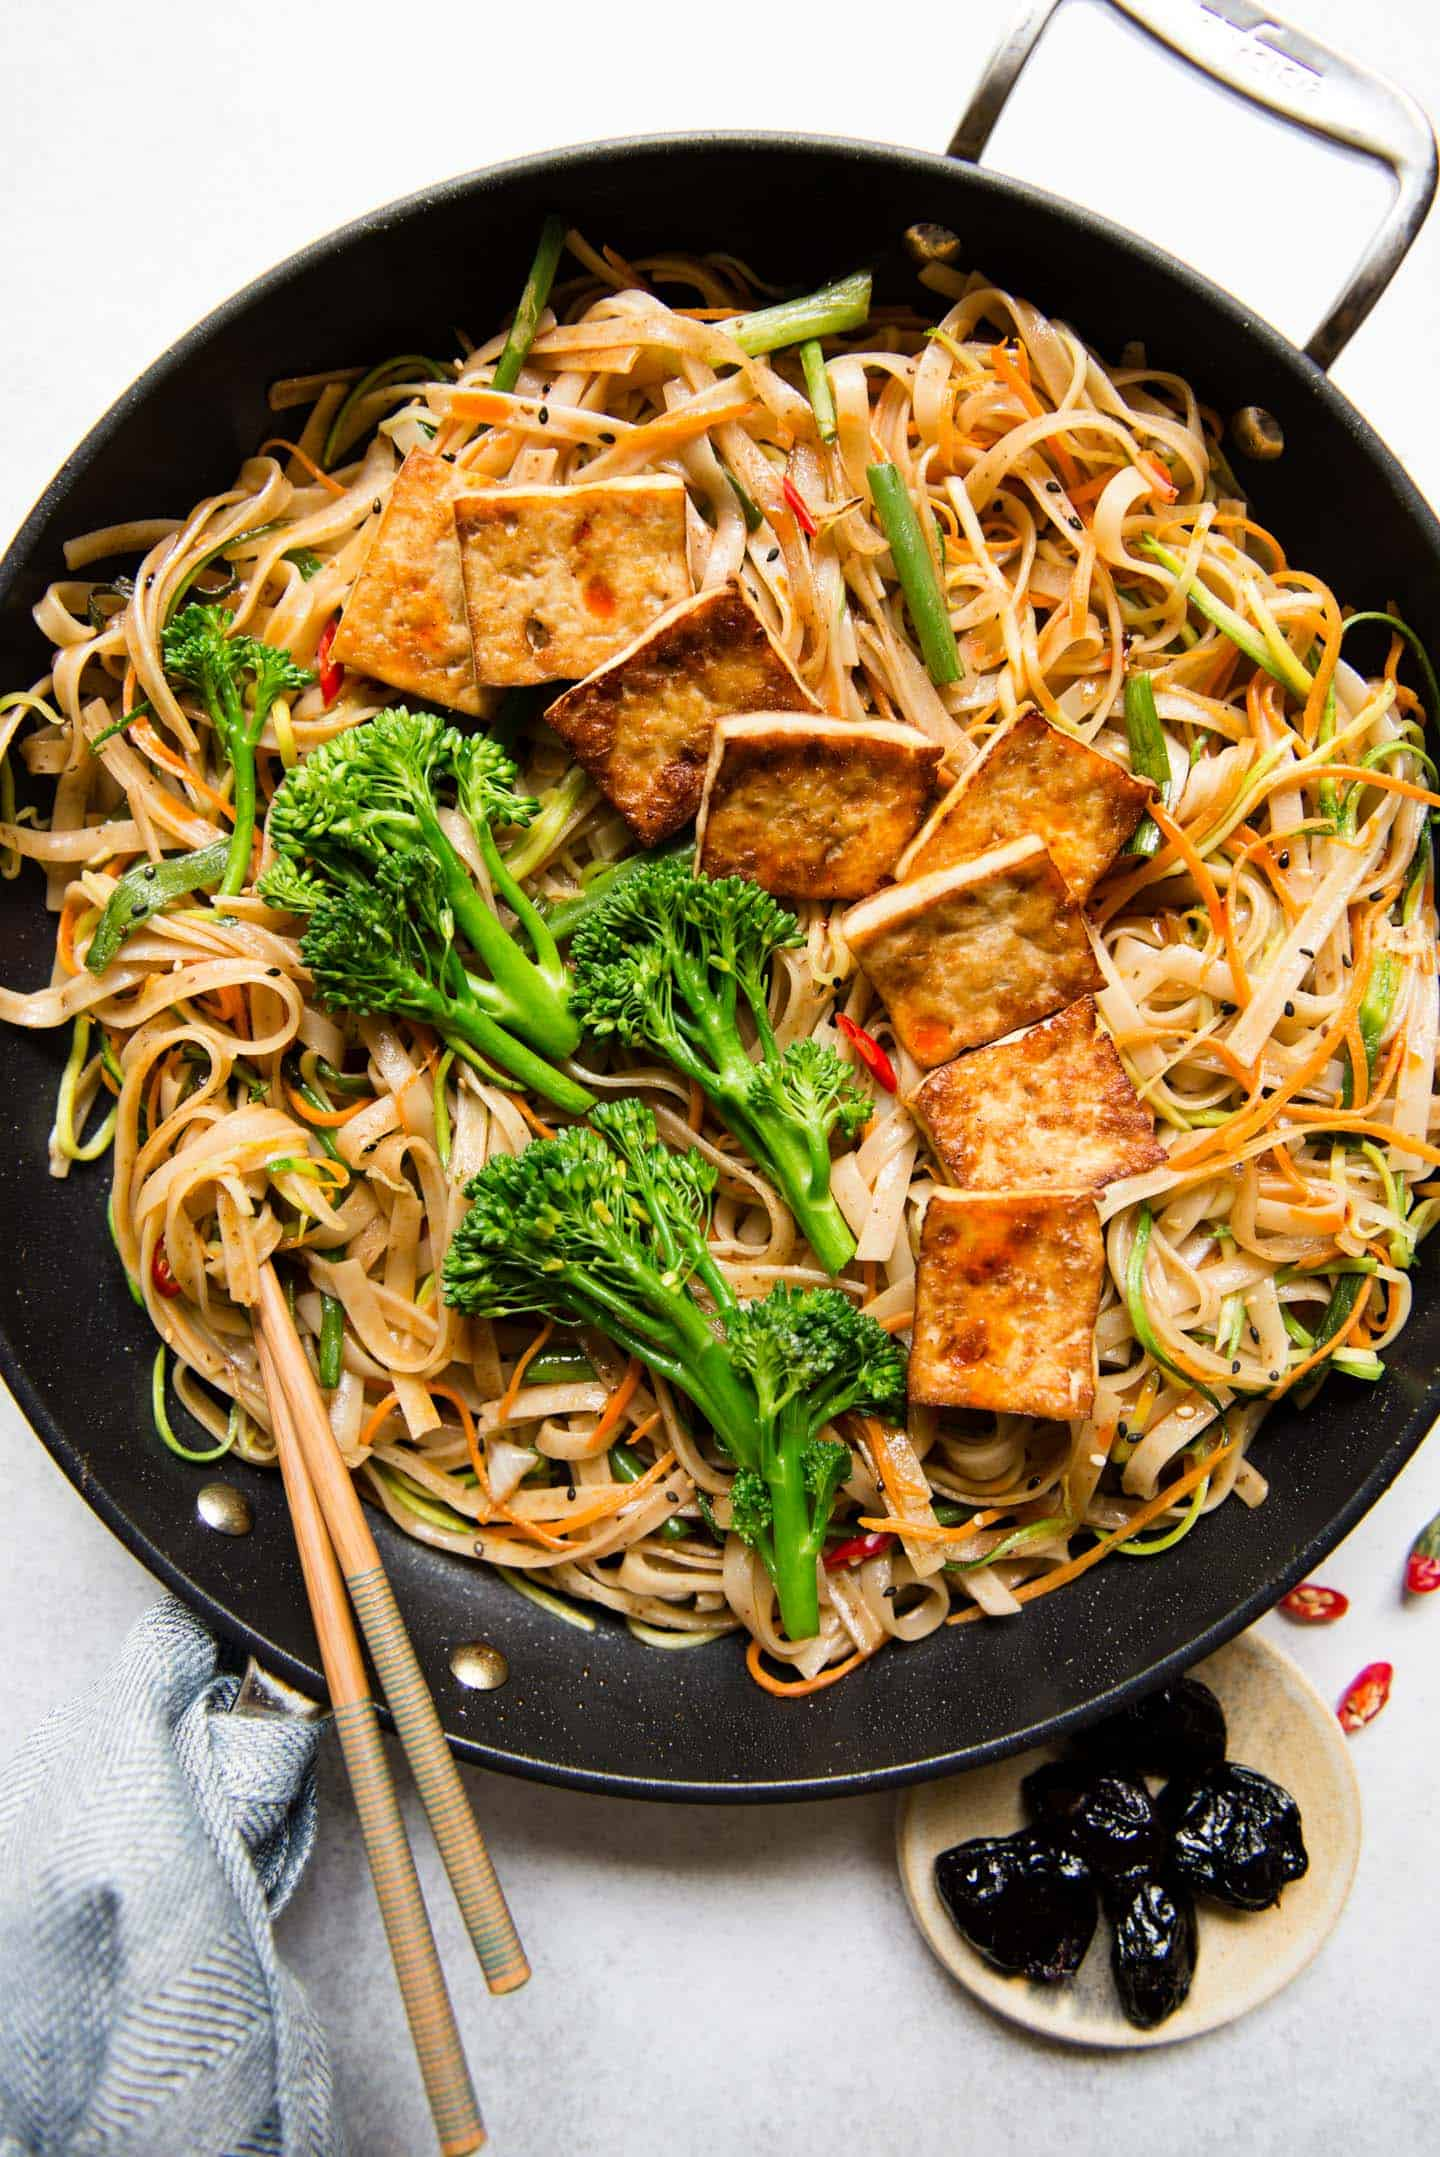 Tofu Stir Fry Noodles Recipe with Dried Plum Sauce